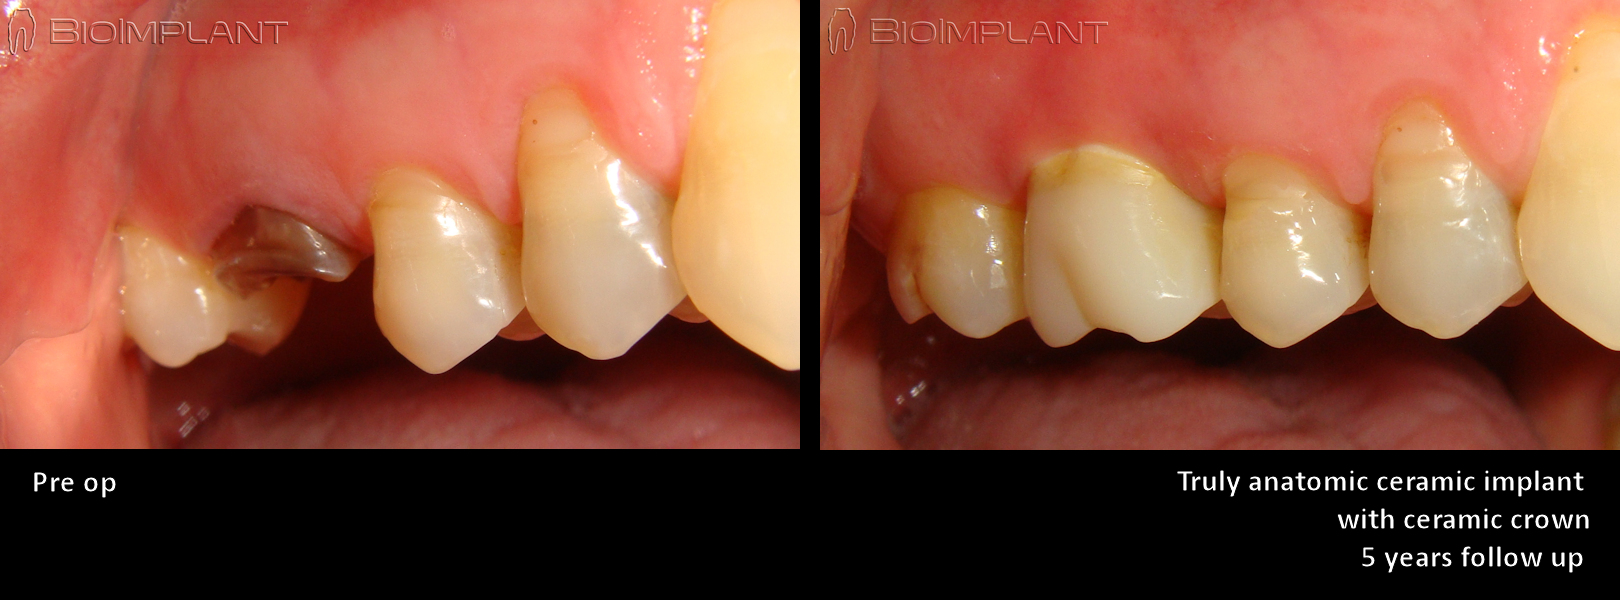 fully-metal-free-immediate-upper-molar-implant-5-years-follow-up